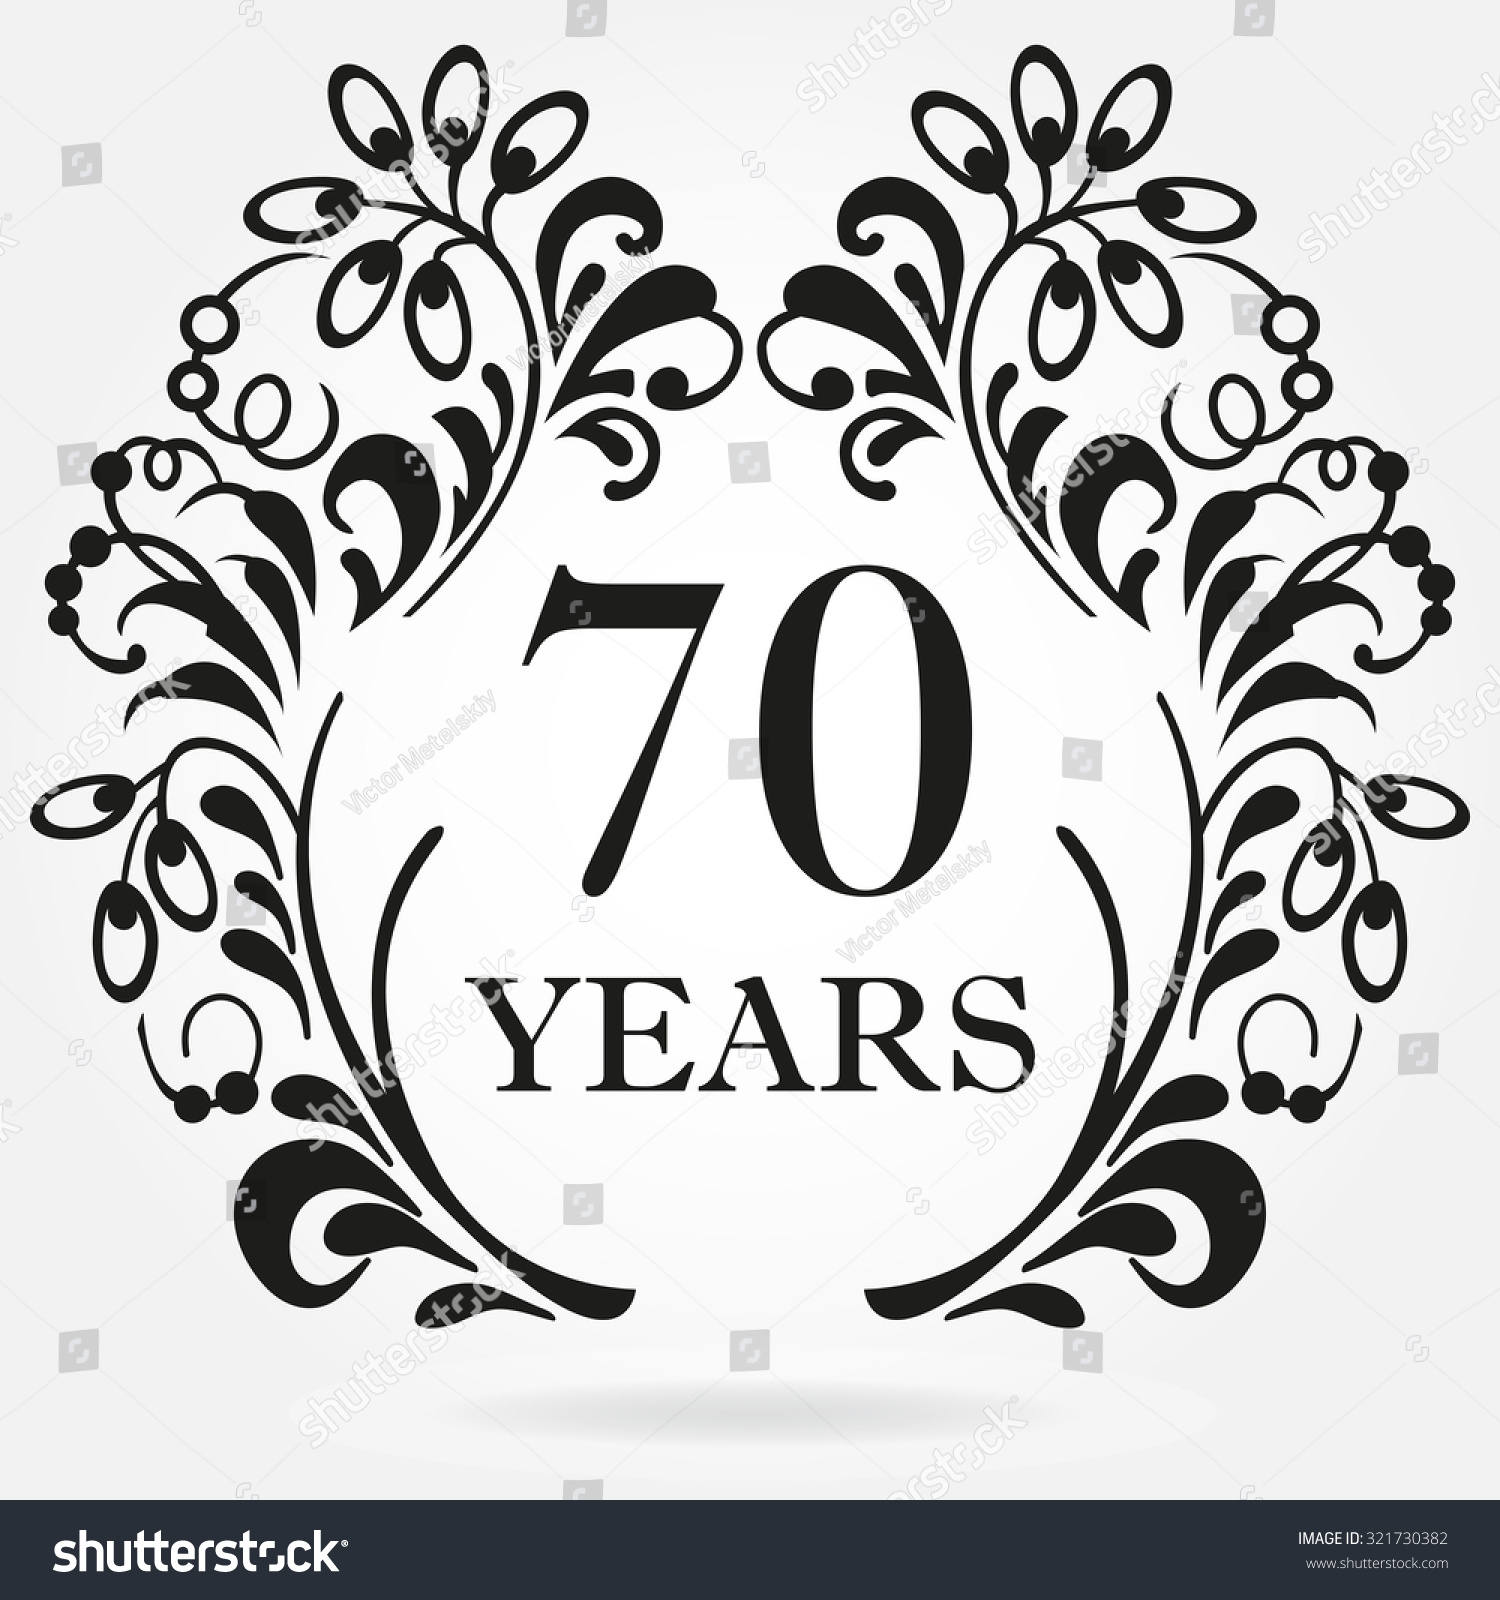 70 Years Anniversary Icon Ornate Frame Stock Vector 321730382 ...